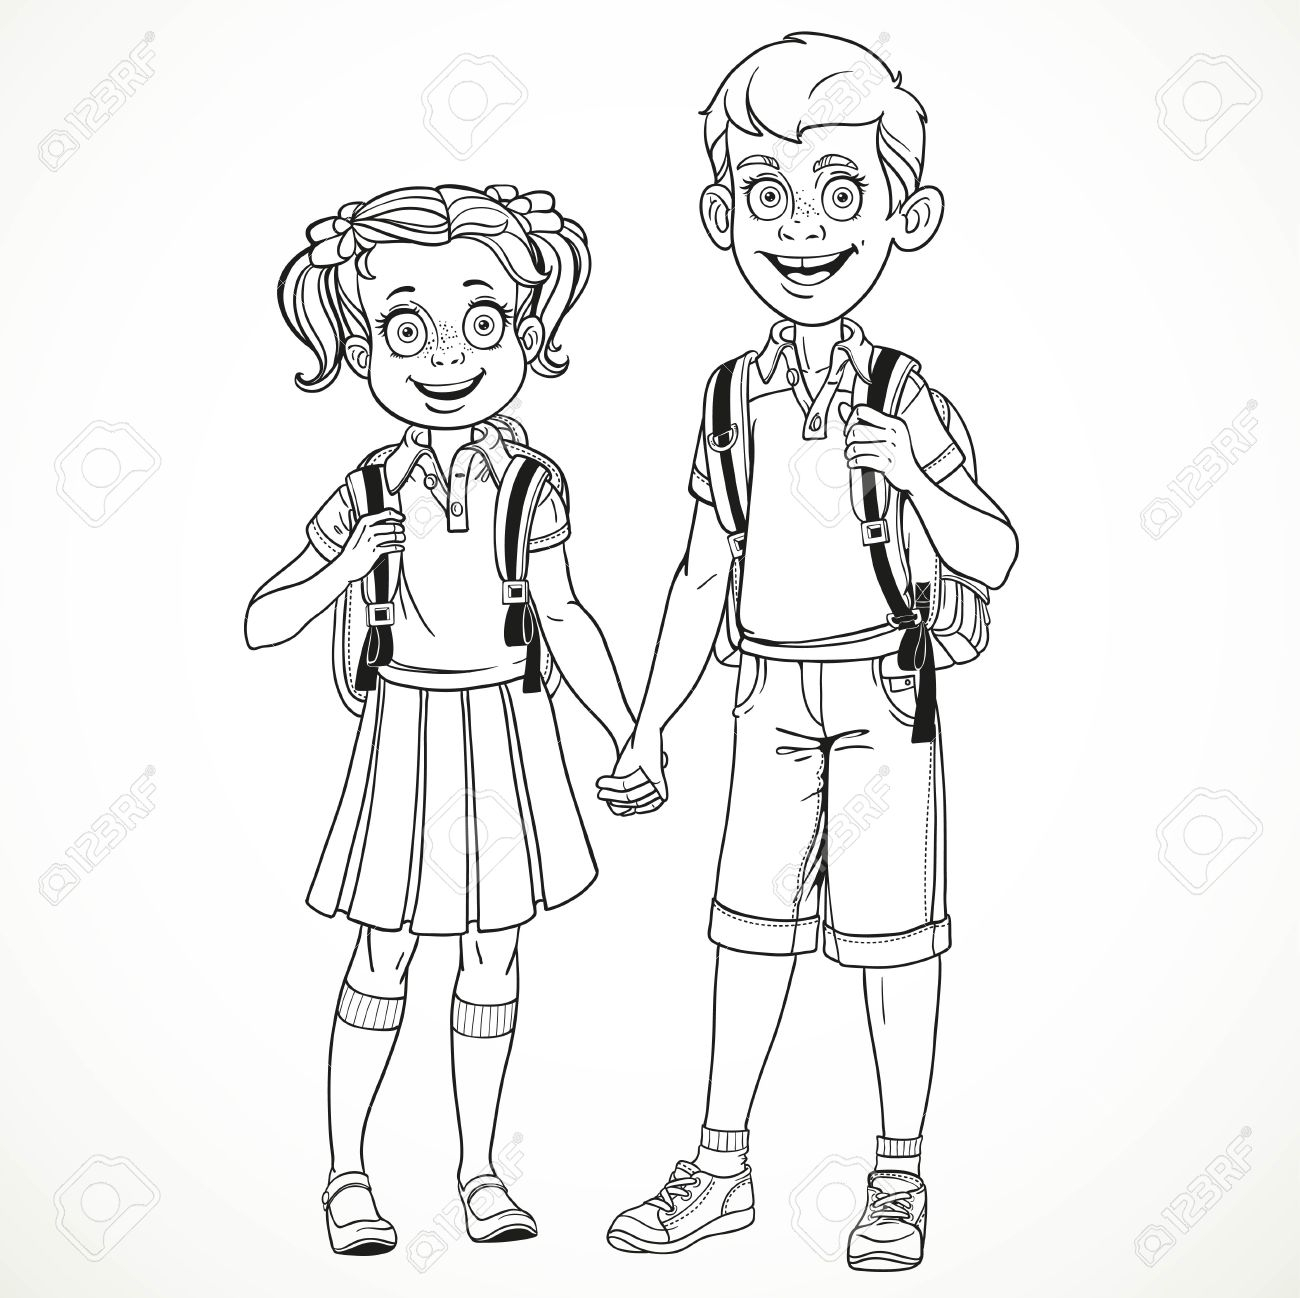 1300x1298 Boy And Girl Drawings Cute Girl And Boy Holding Hands Drawing